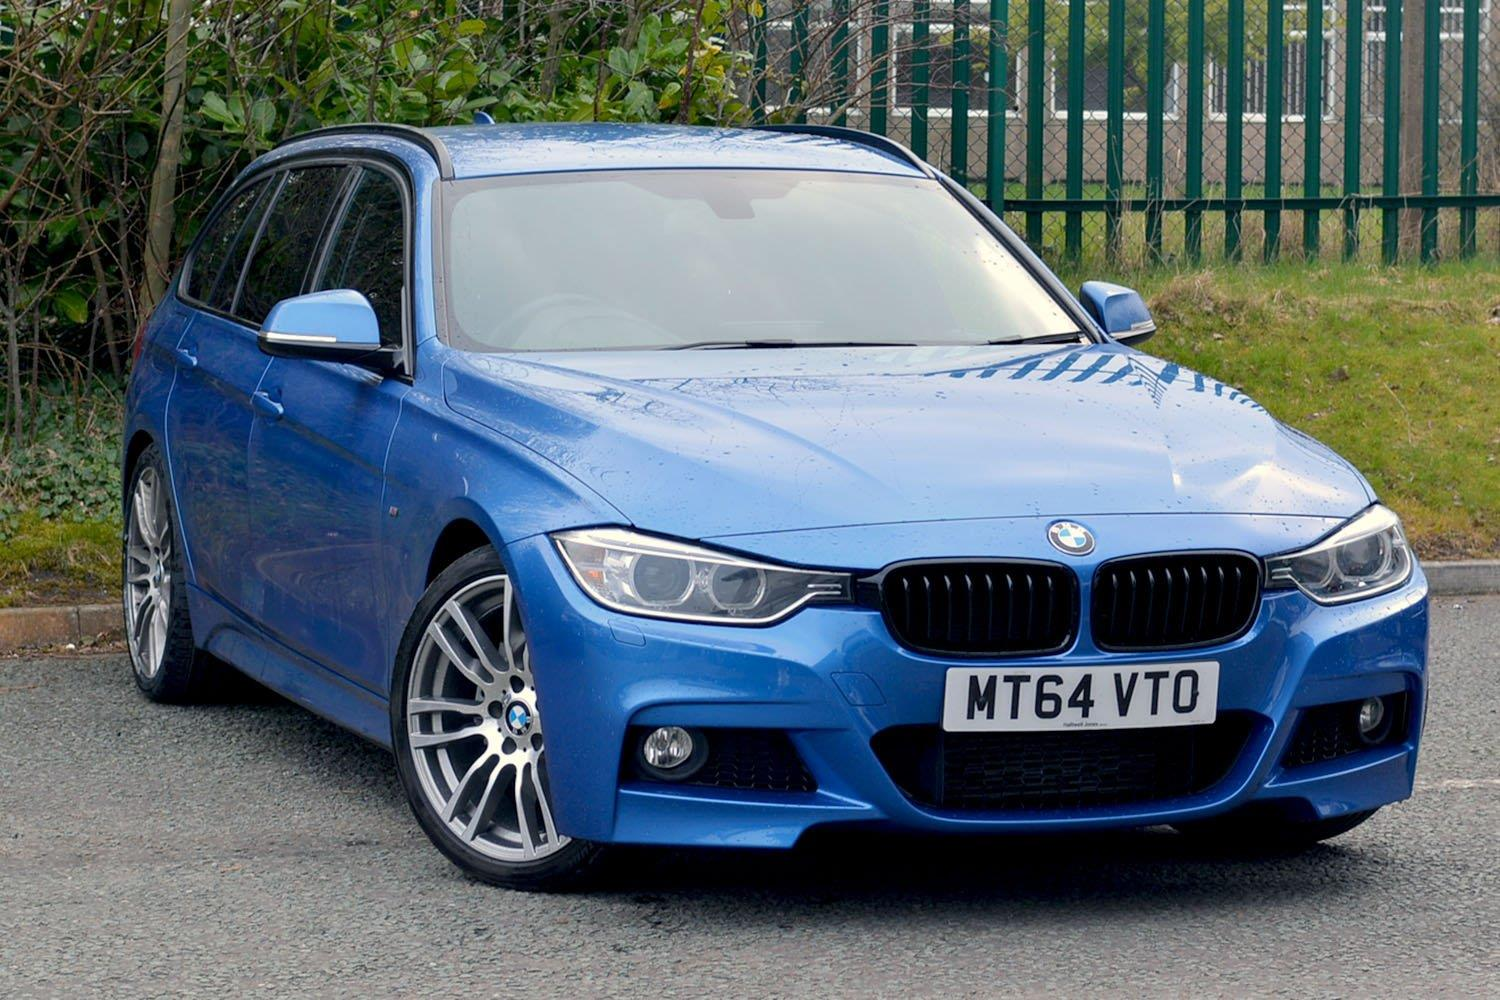 BMW 3 Series Touring MT64VTO - Image 10